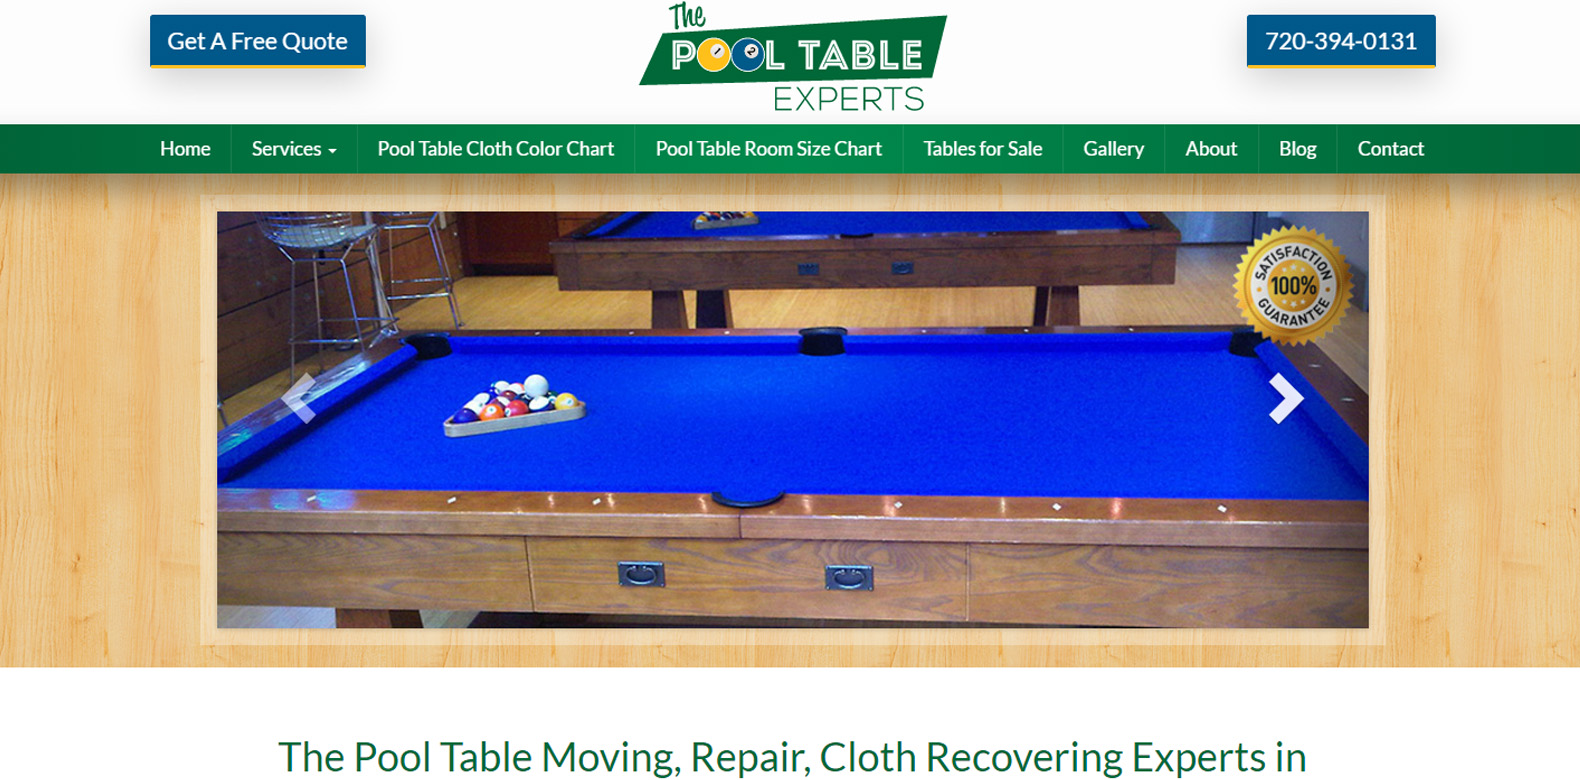 New Upgrade Launched: The Pool Table Experts